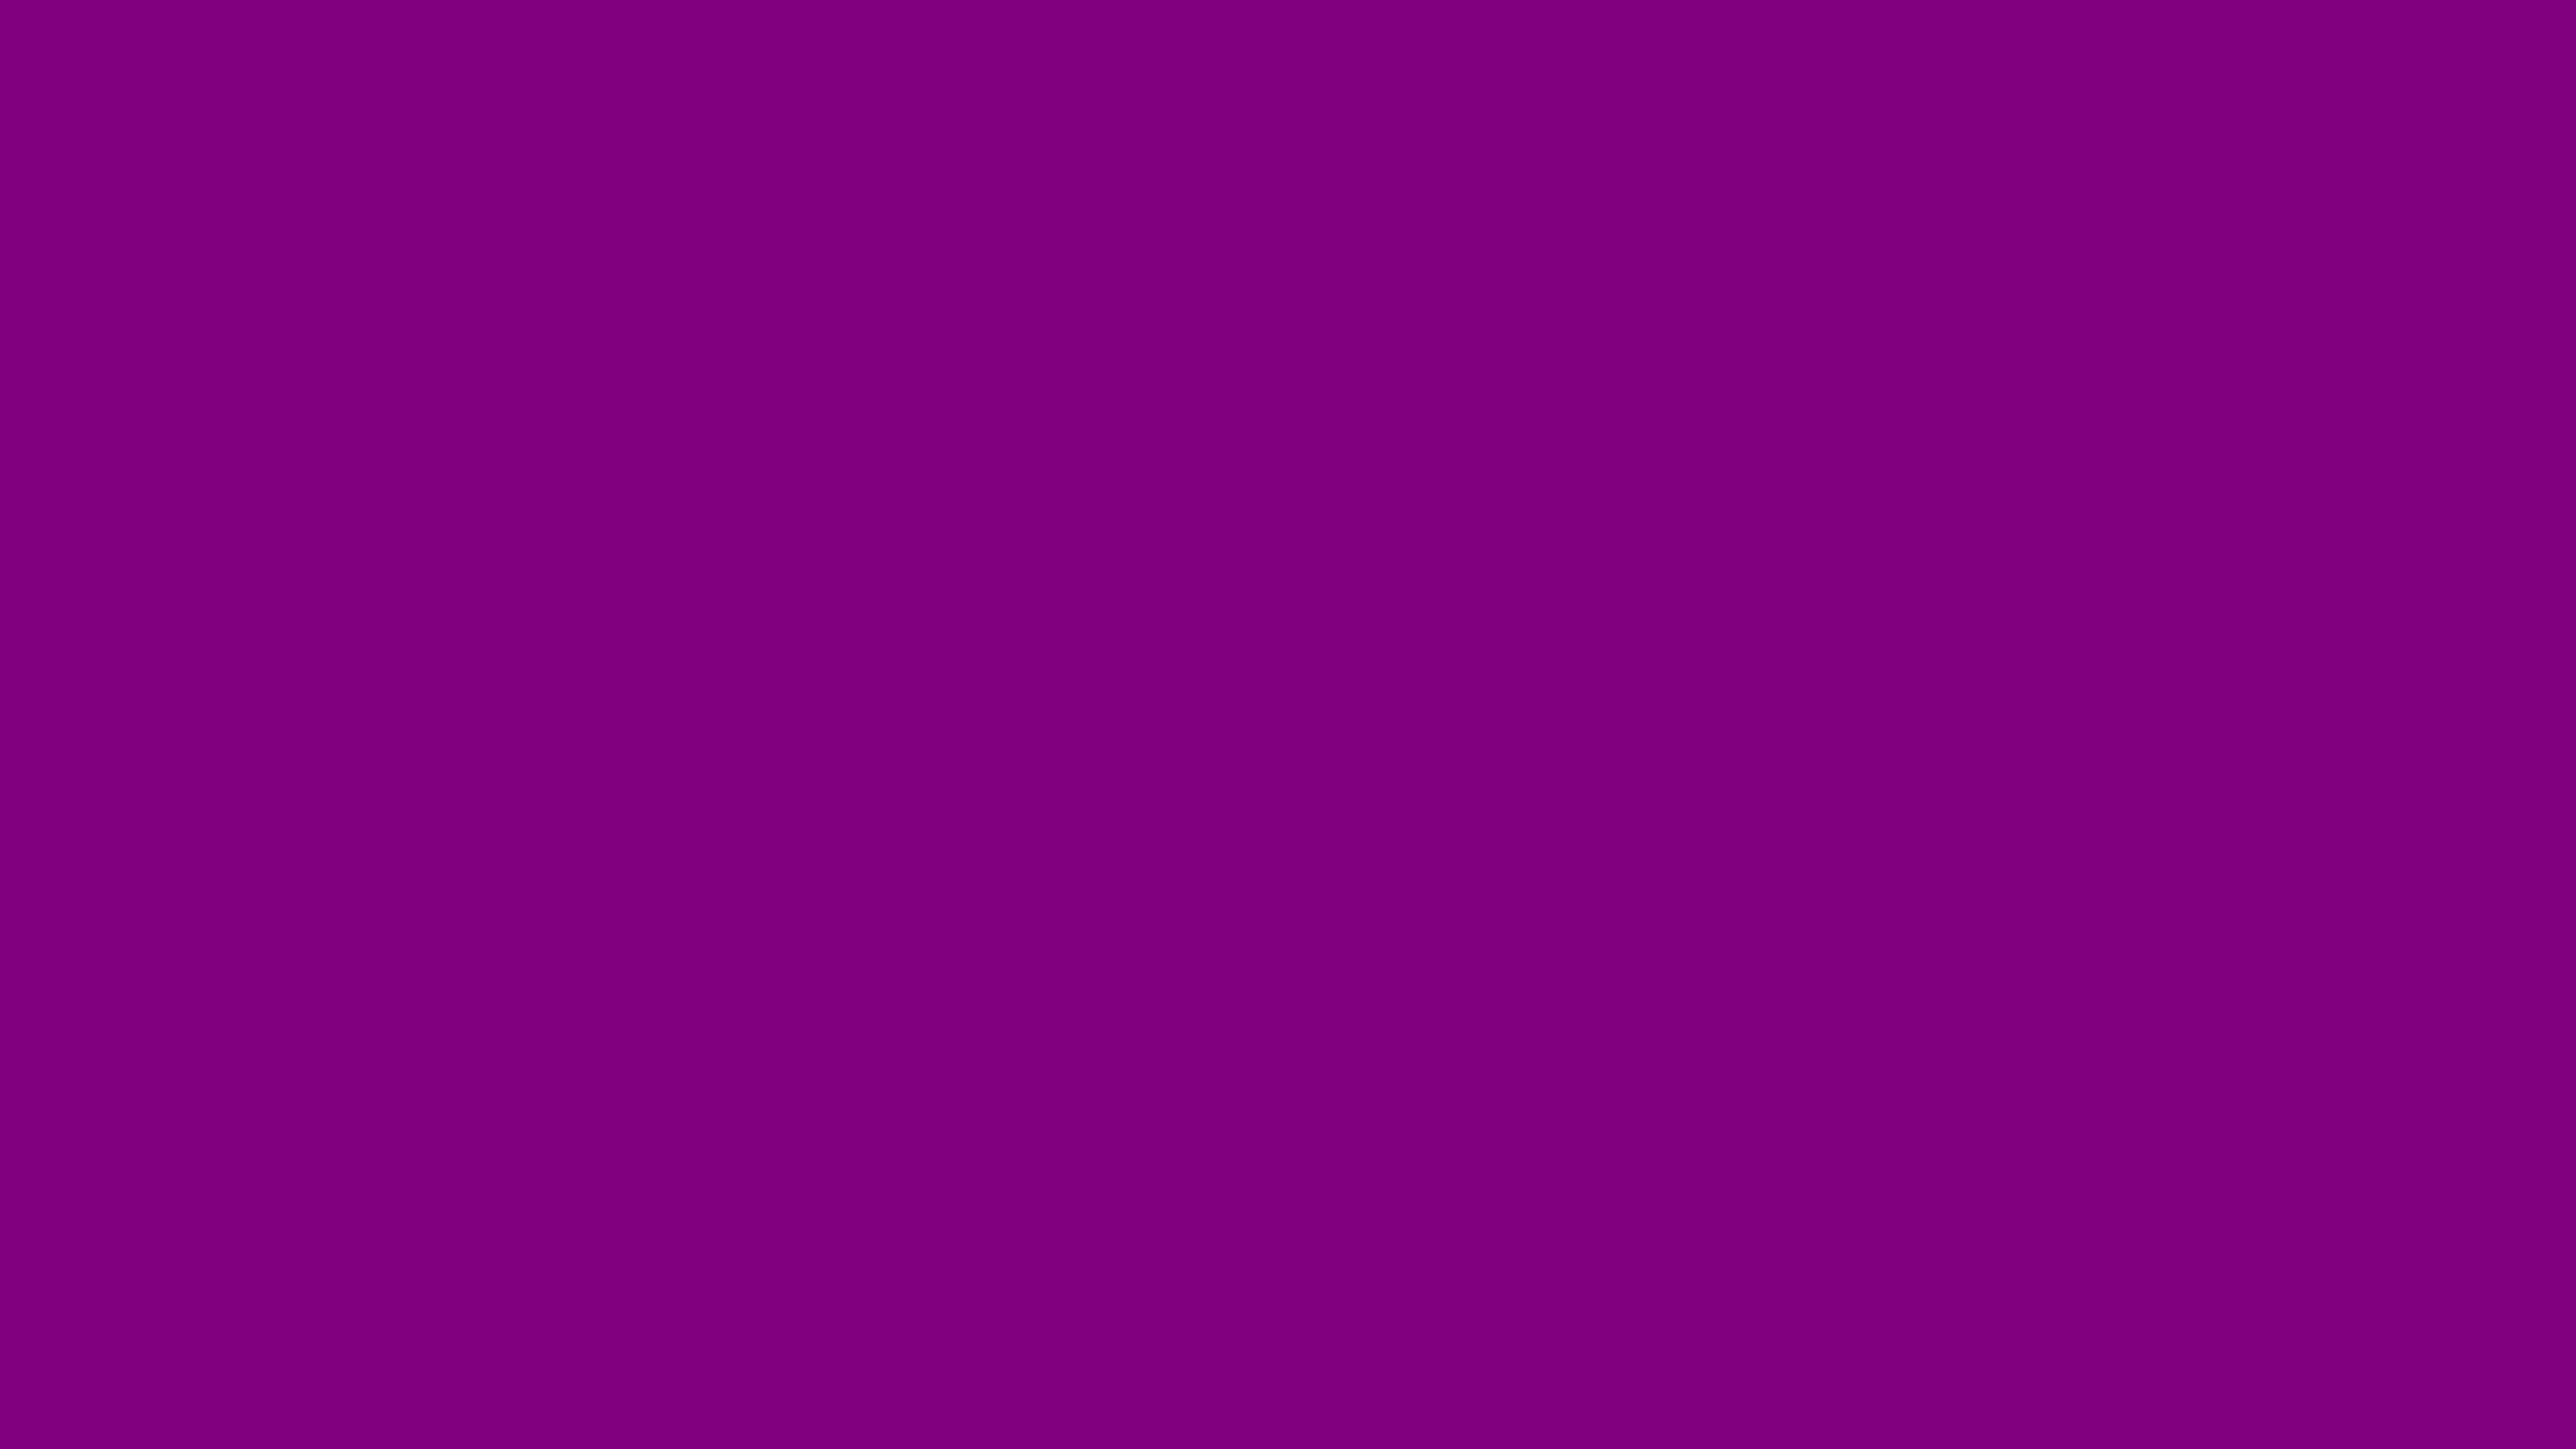 4096x2304 Purple Web Solid Color Background